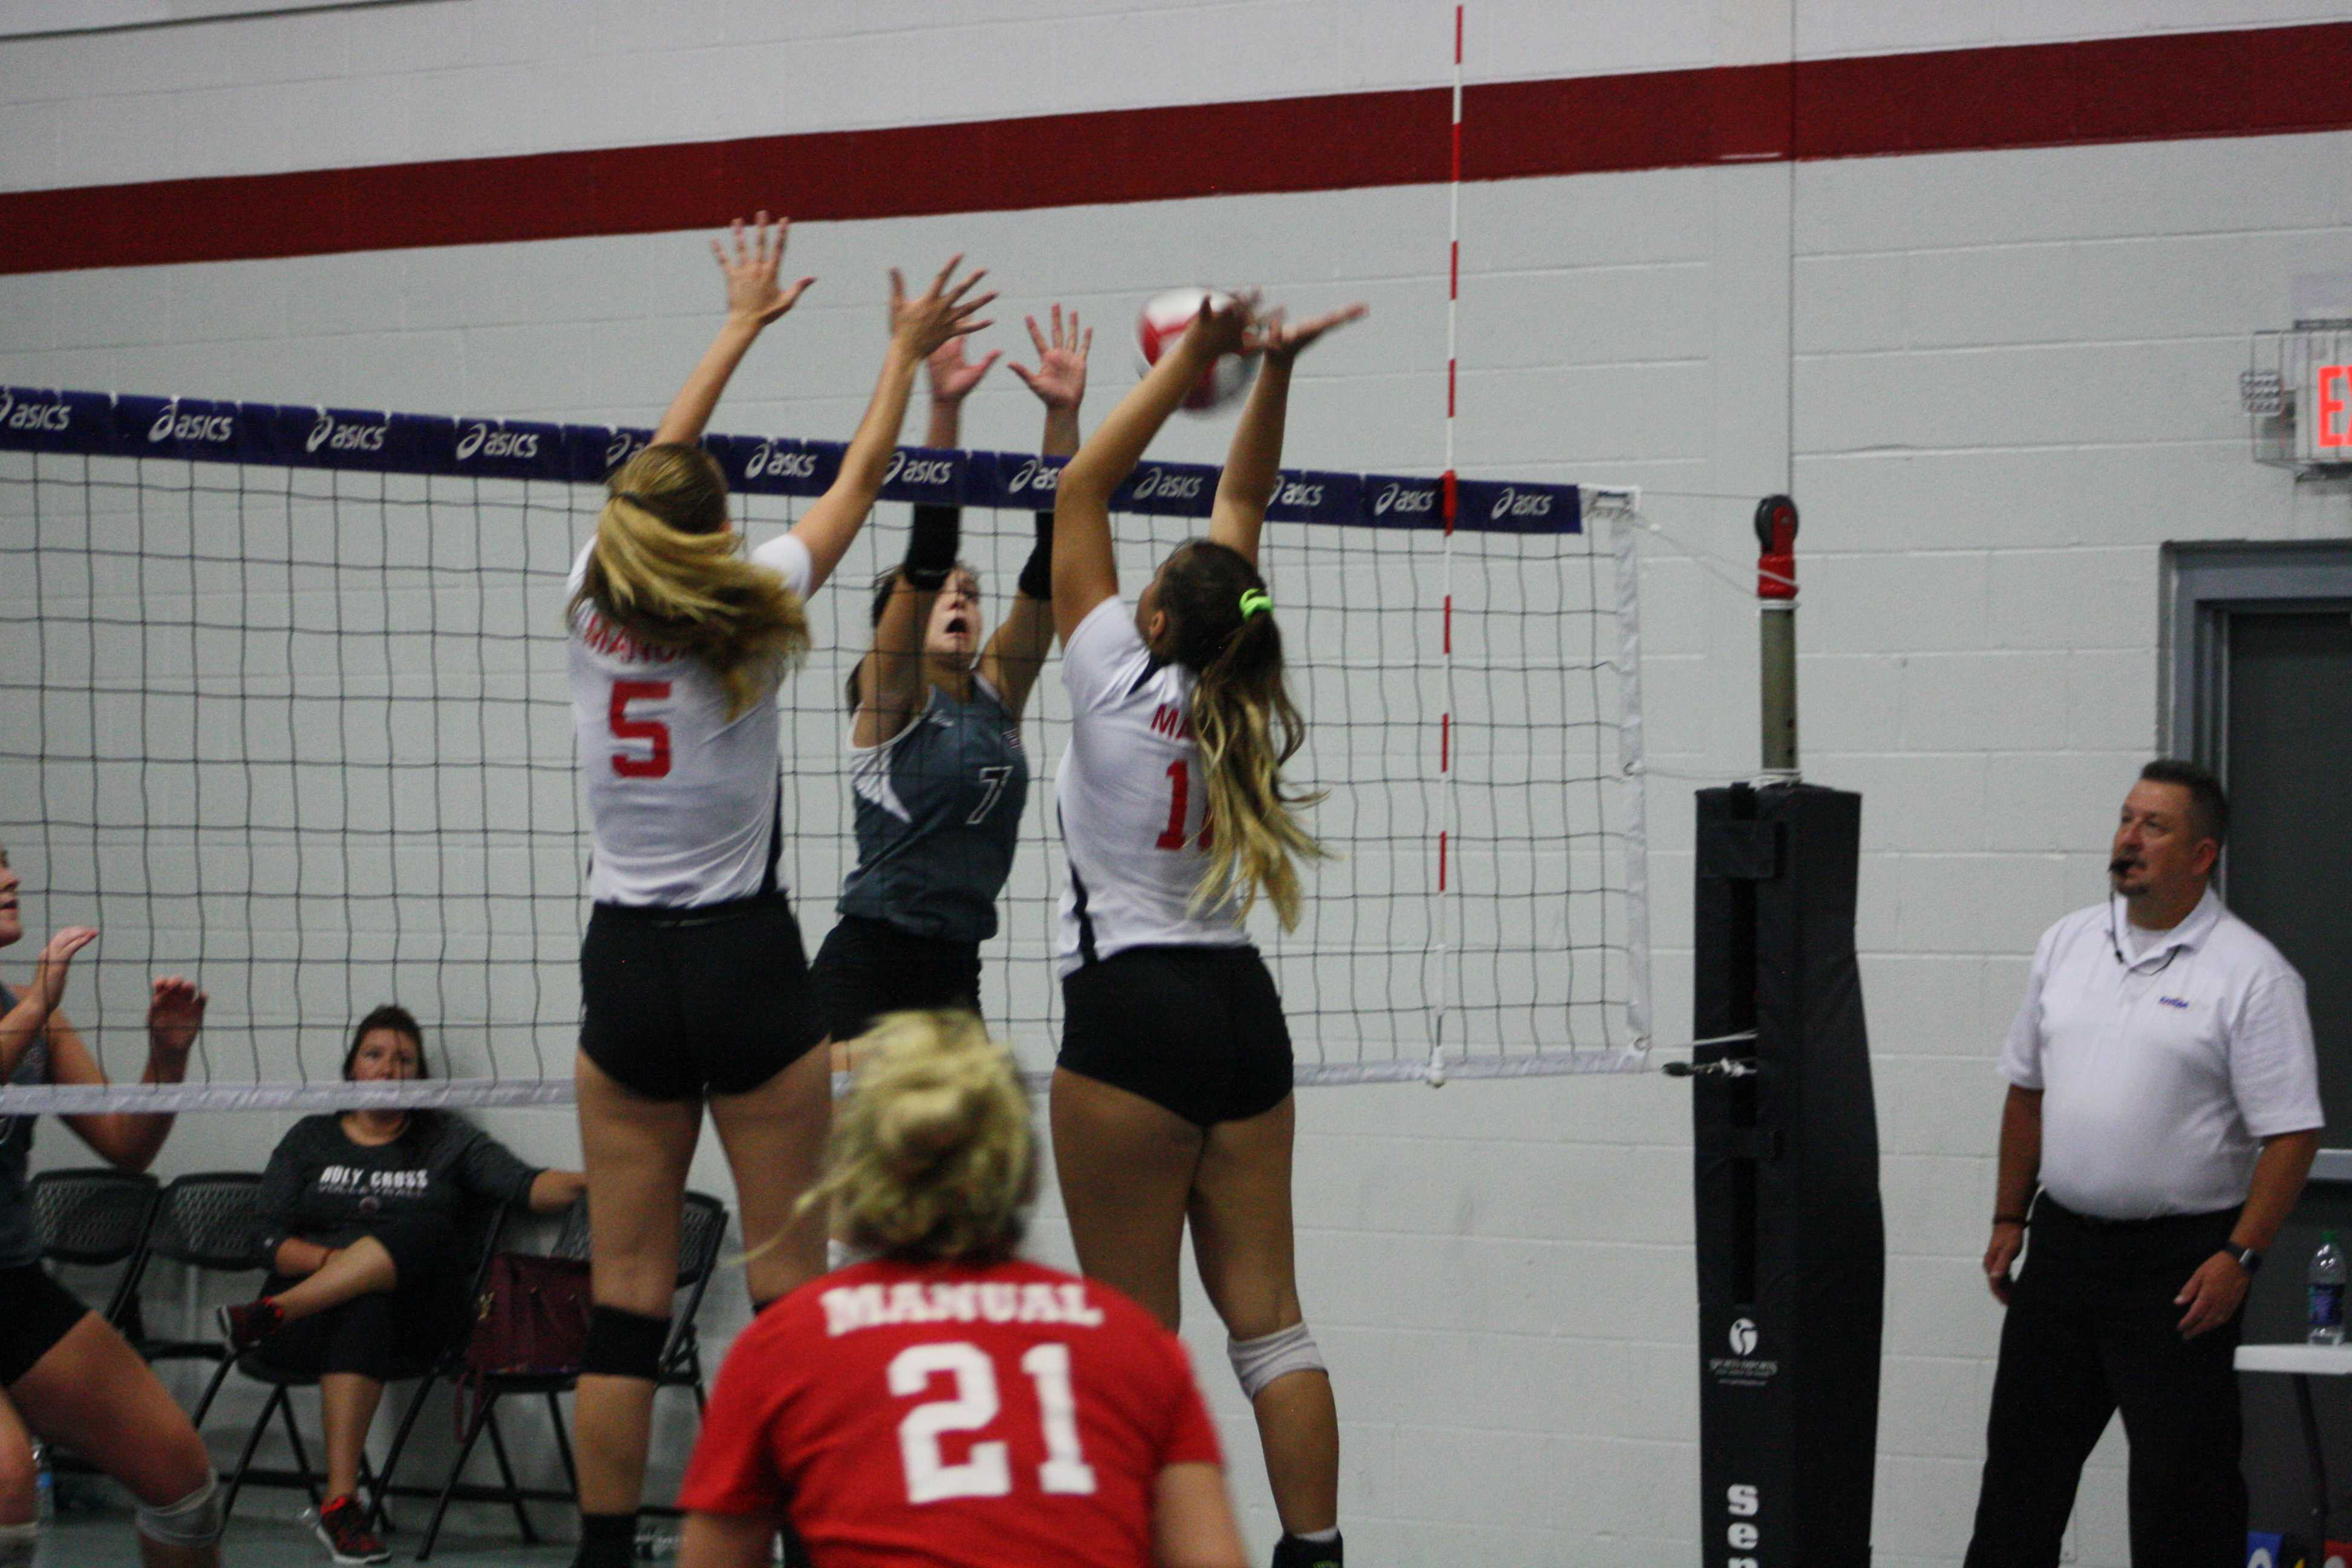 Manual looks to block the ball. Photo courtesy of Phoebe Monsour.